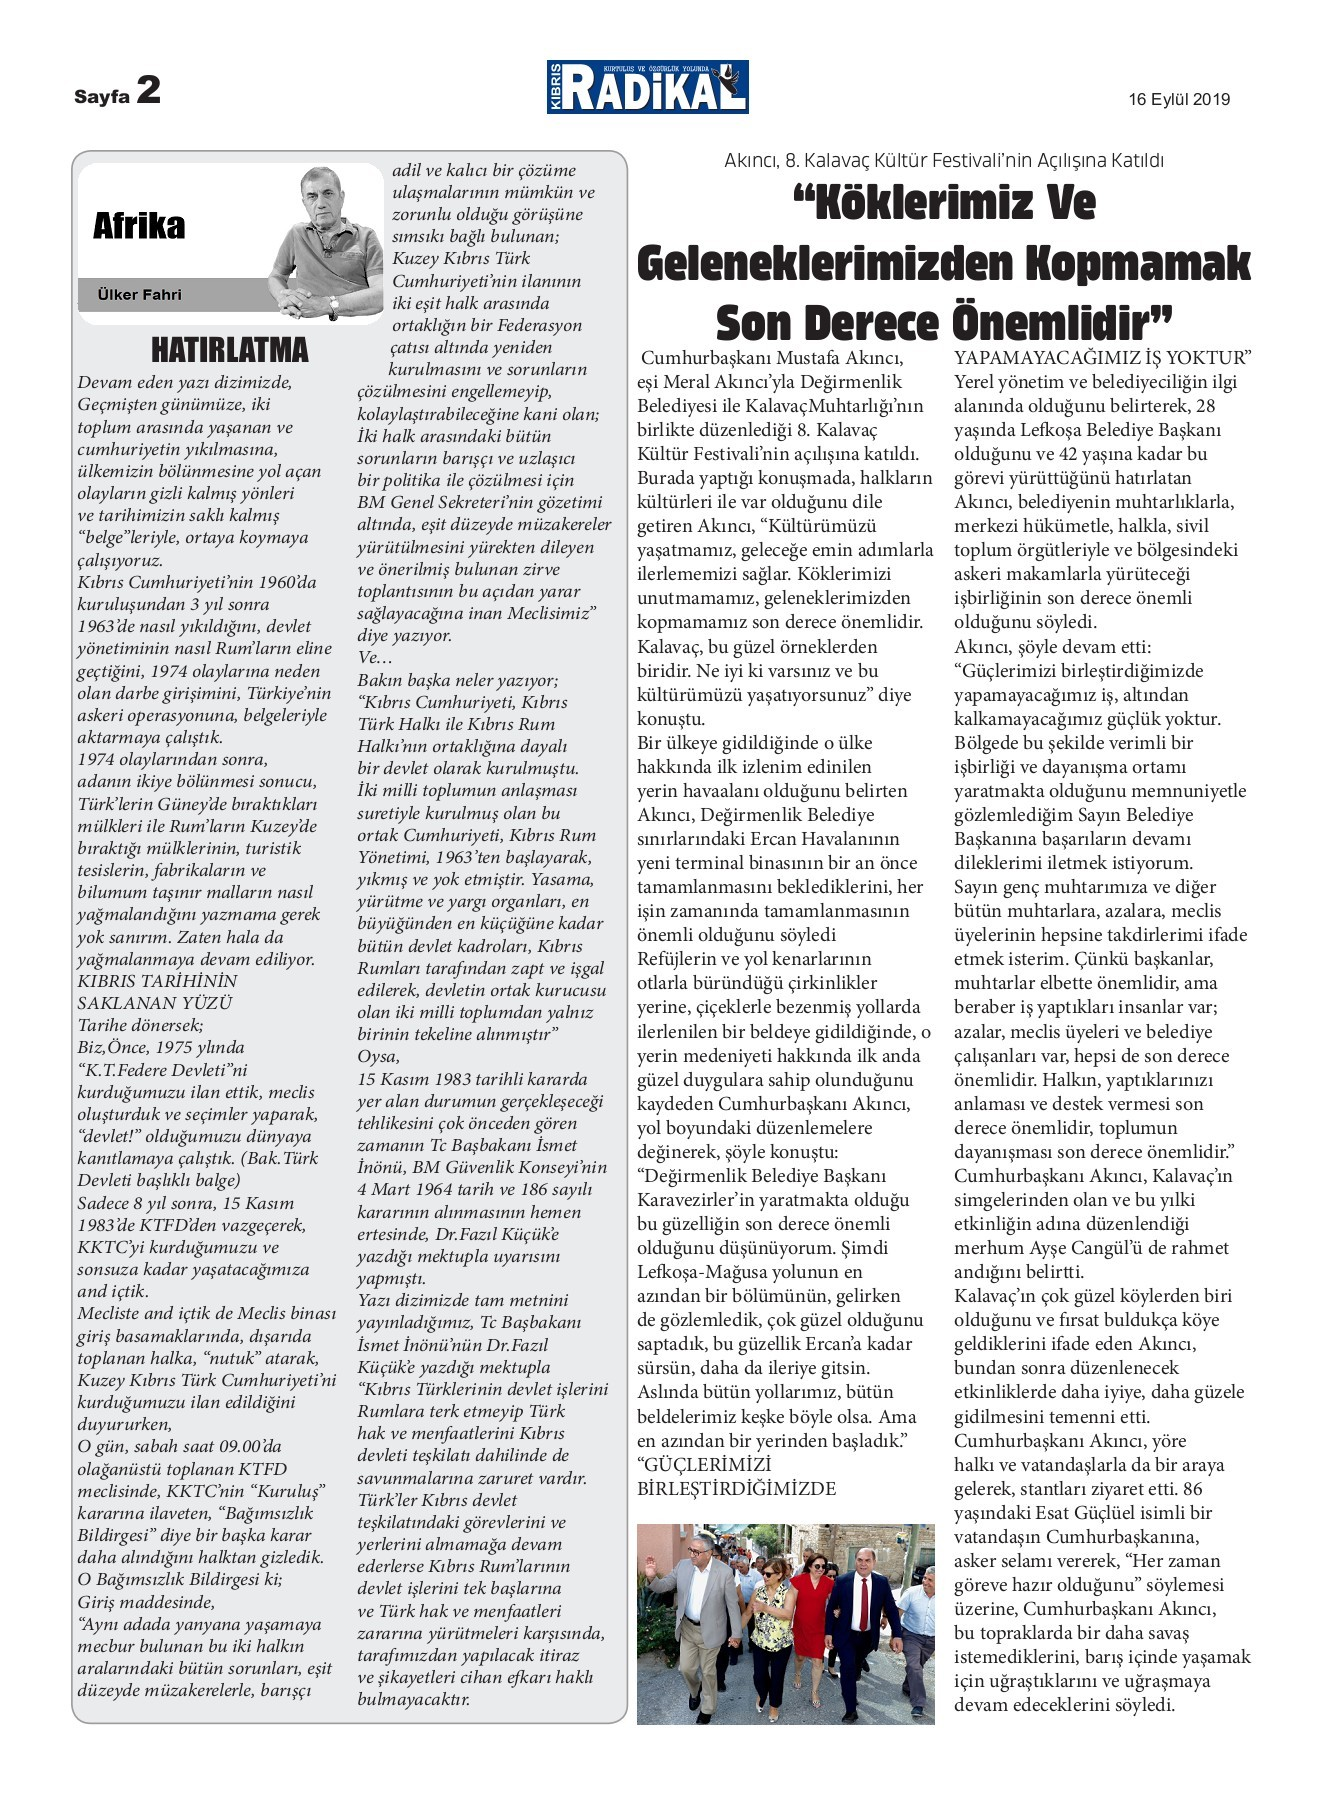 Radikal 16 09 2019 Pages 1 24 Text Version Pubhtml5